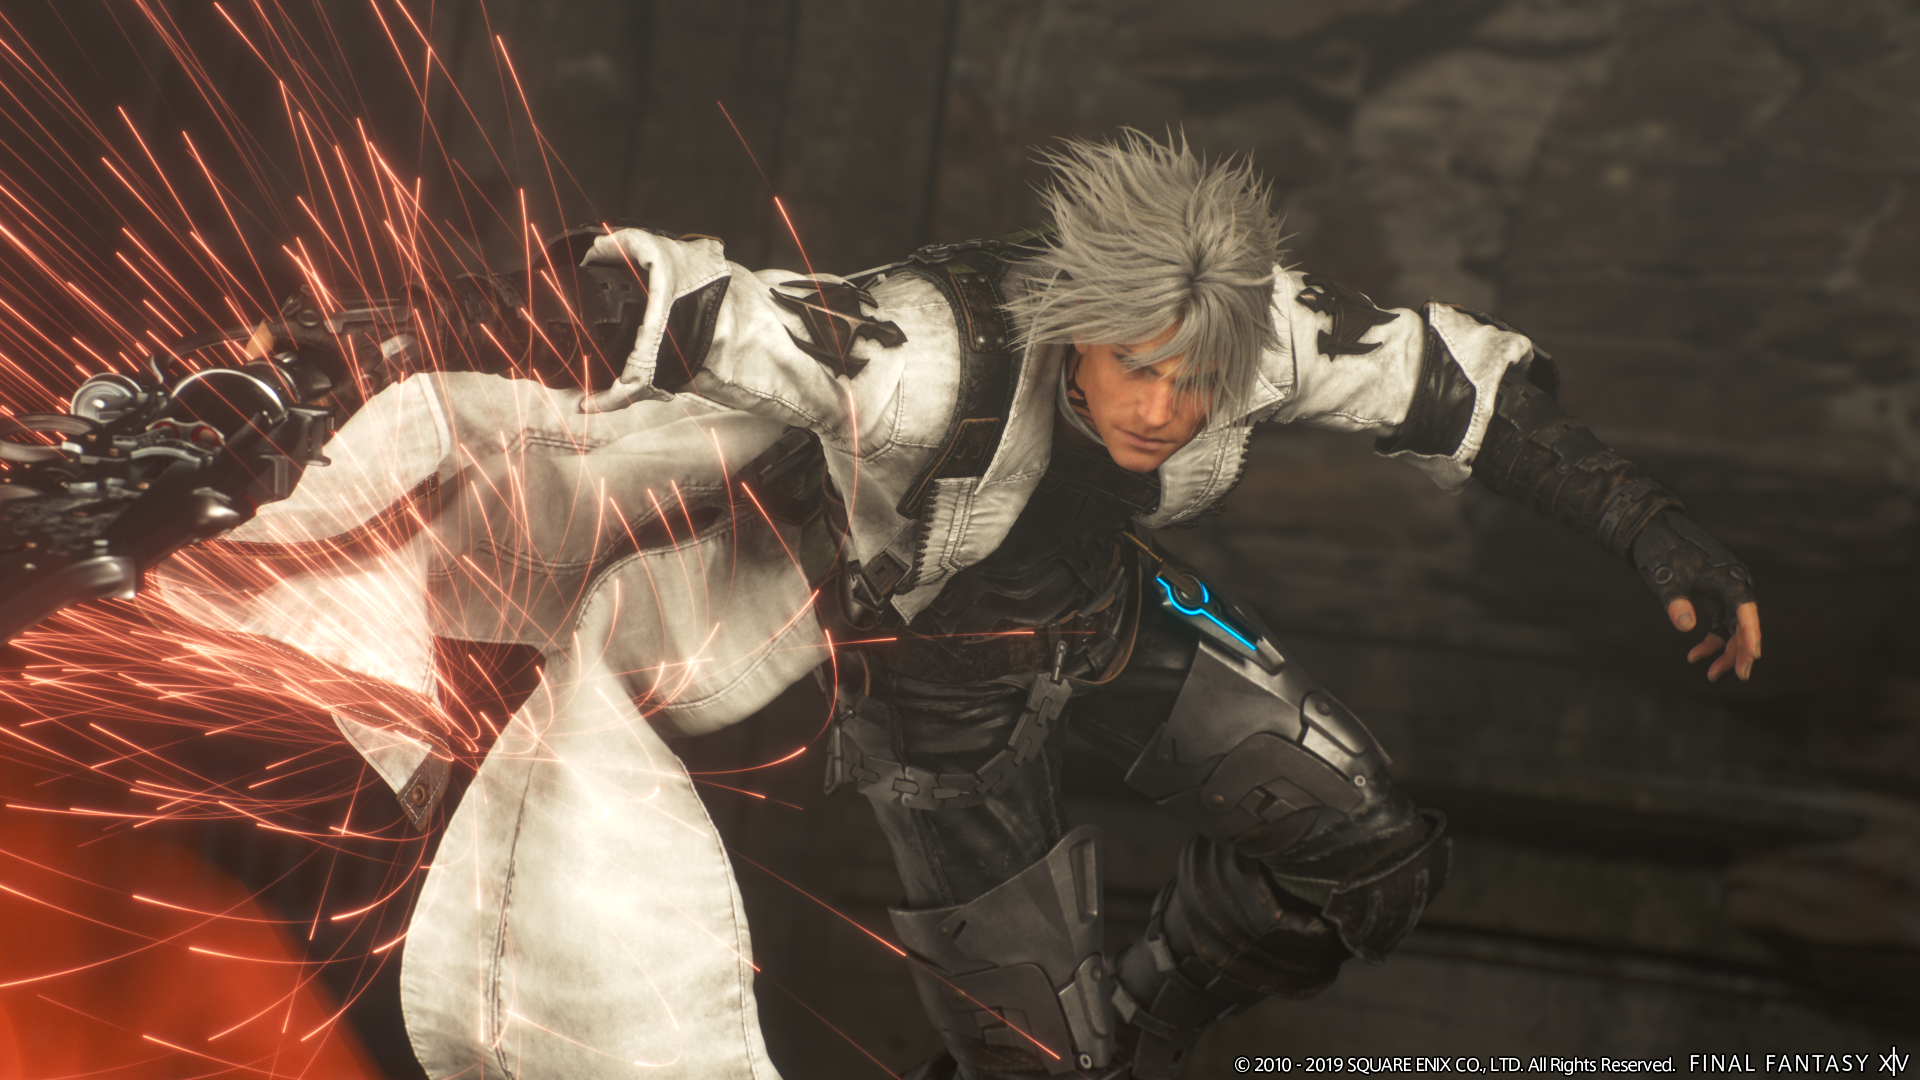 Final Fantasy XIV FanFest shows off new job, playable race